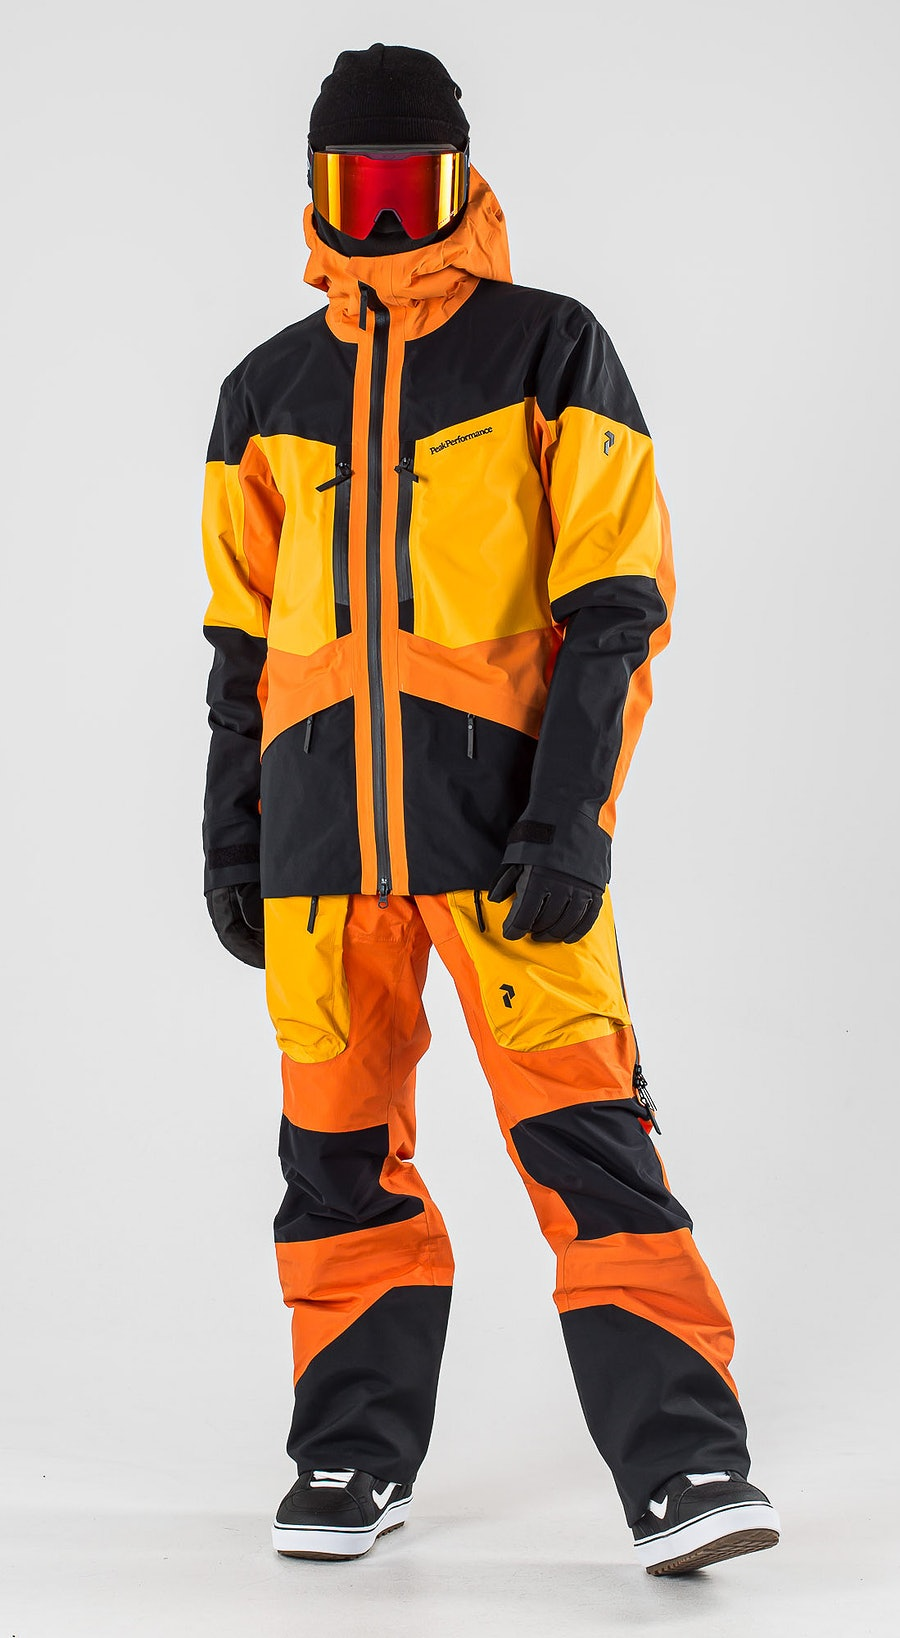 Peak Performance Gravity Orange Altitude Snowboardkleidung Multi